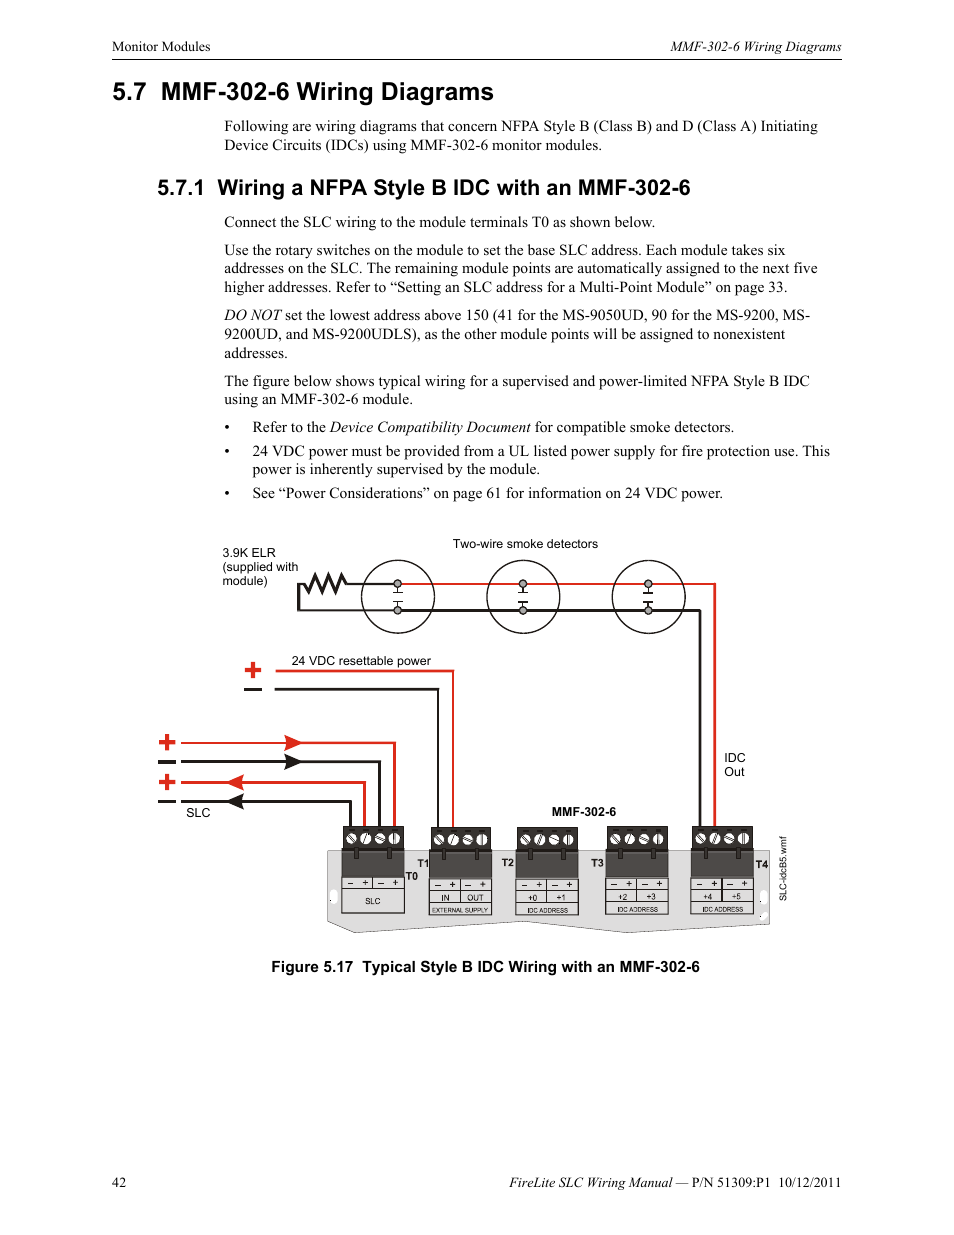 7 mmf 302 6 wiring diagrams, 1 wiring a nfpa style b idc with an mmf ms-9050ud wiring diagram at Ms 9050ud Wiring Diagram